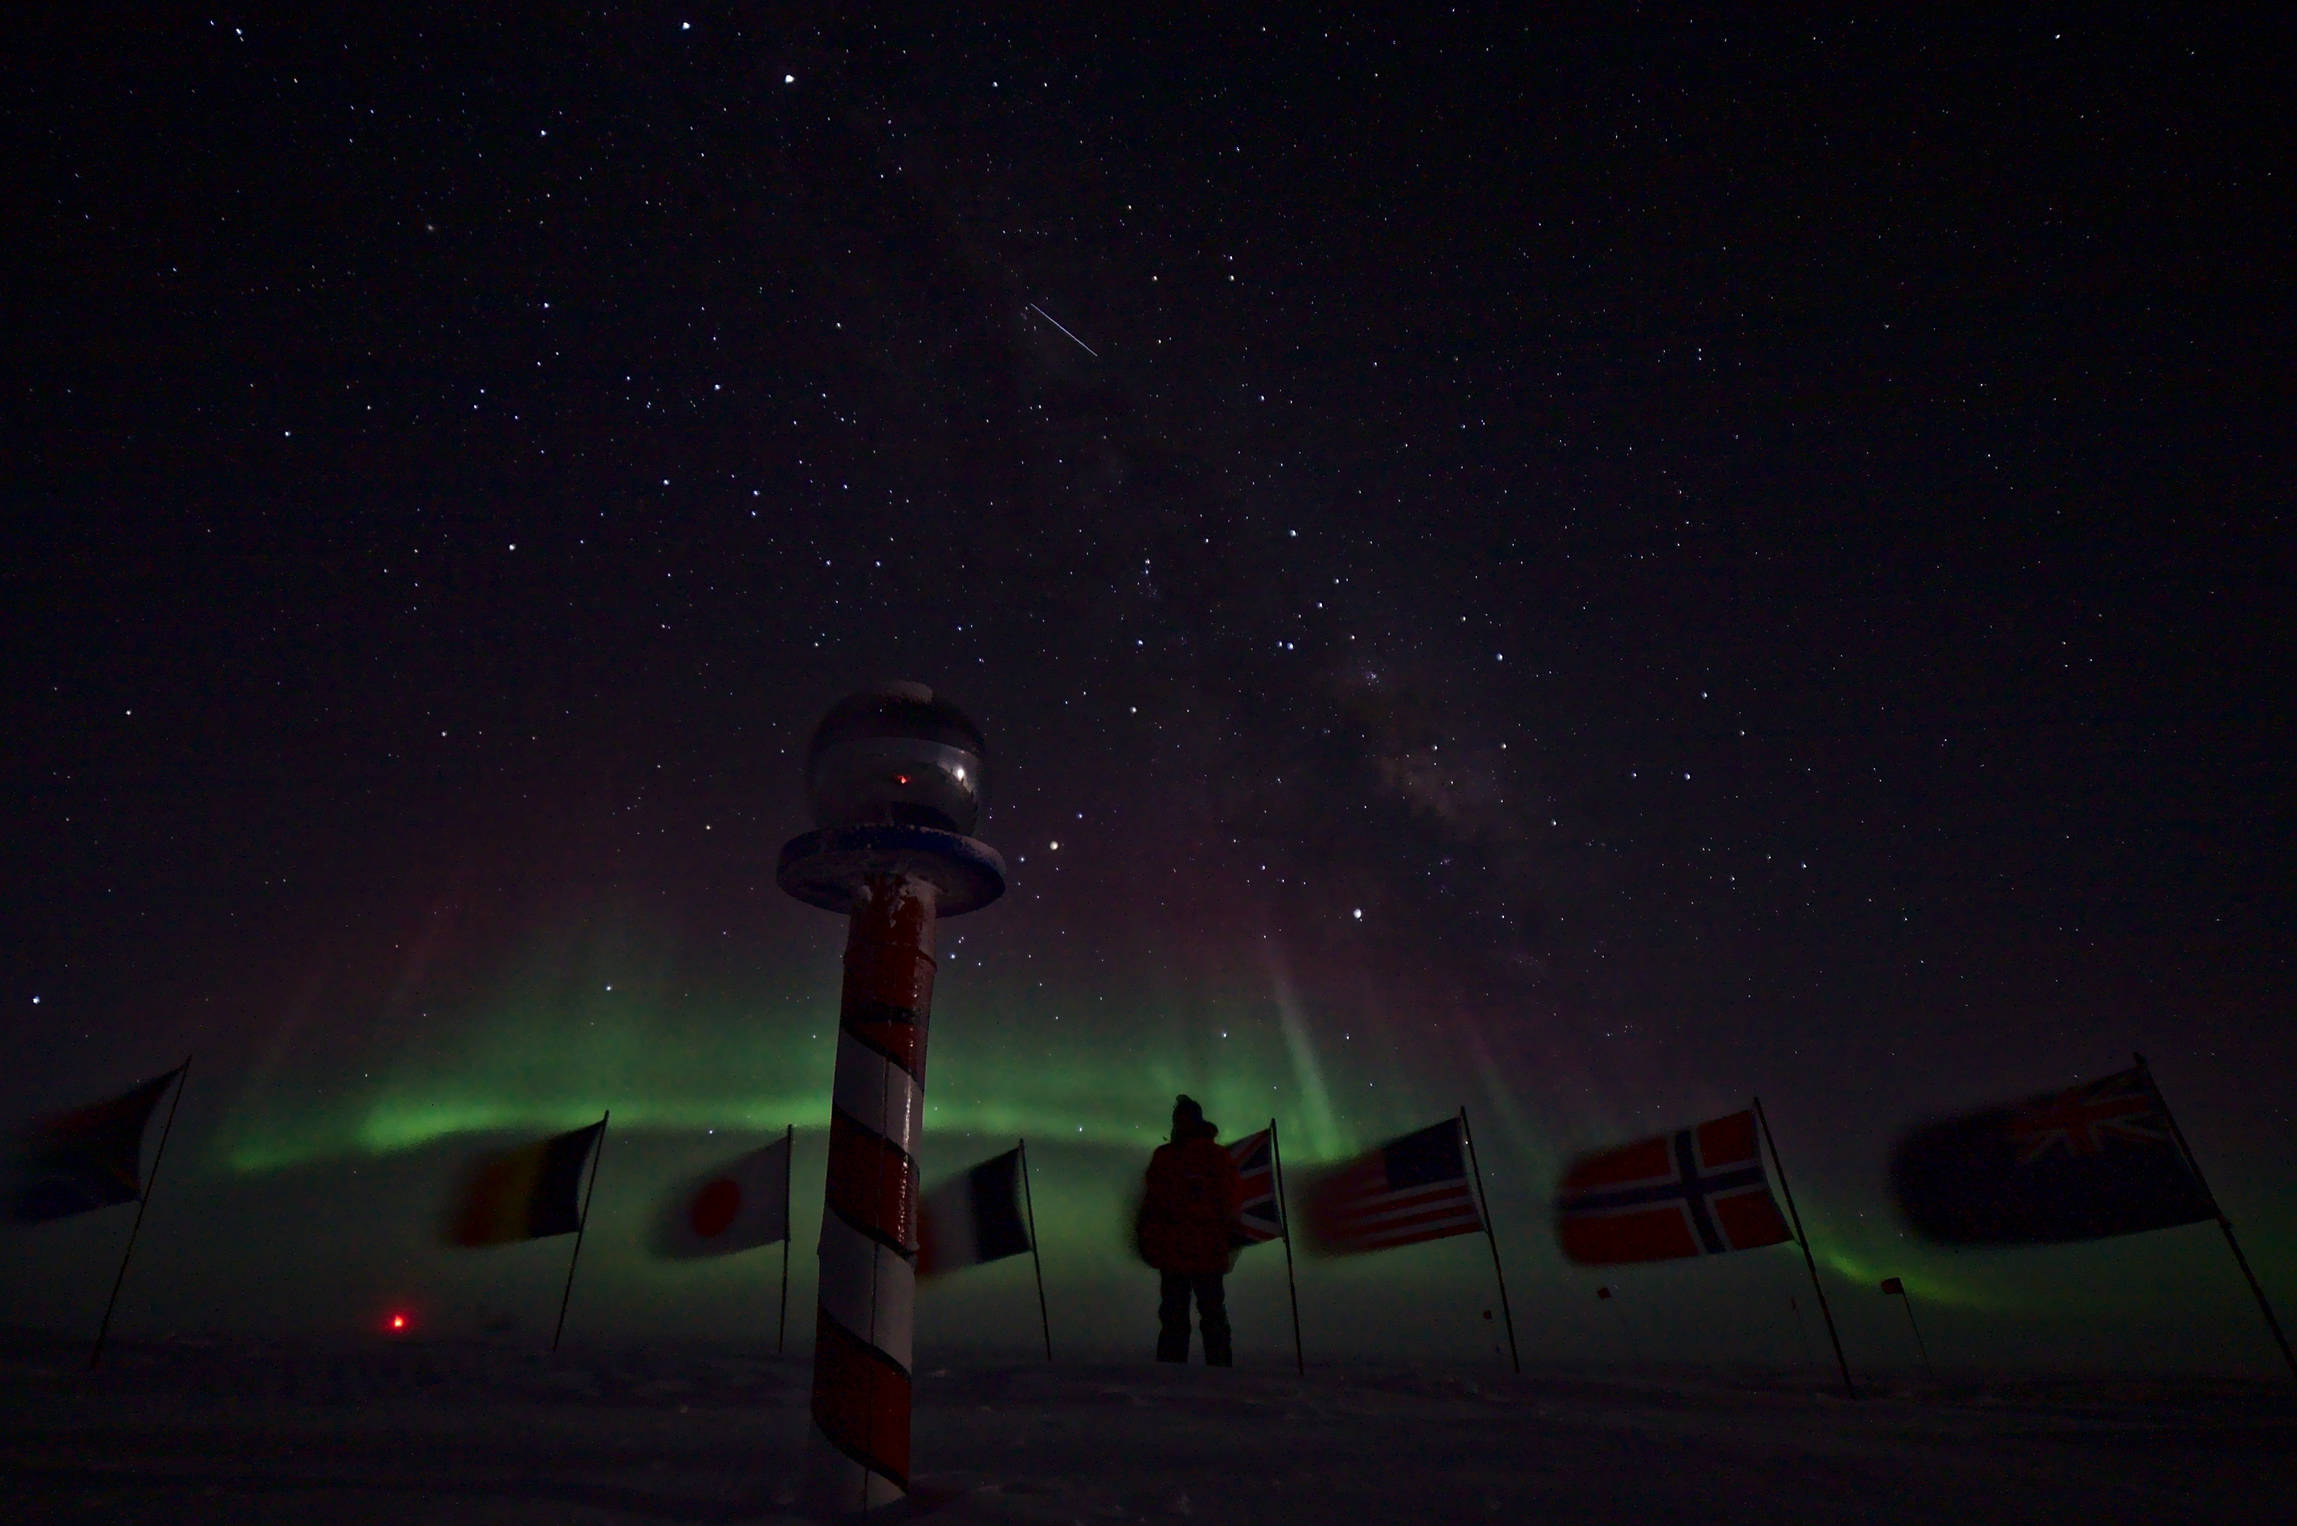 Taking a selfie at the ceremonial south pole